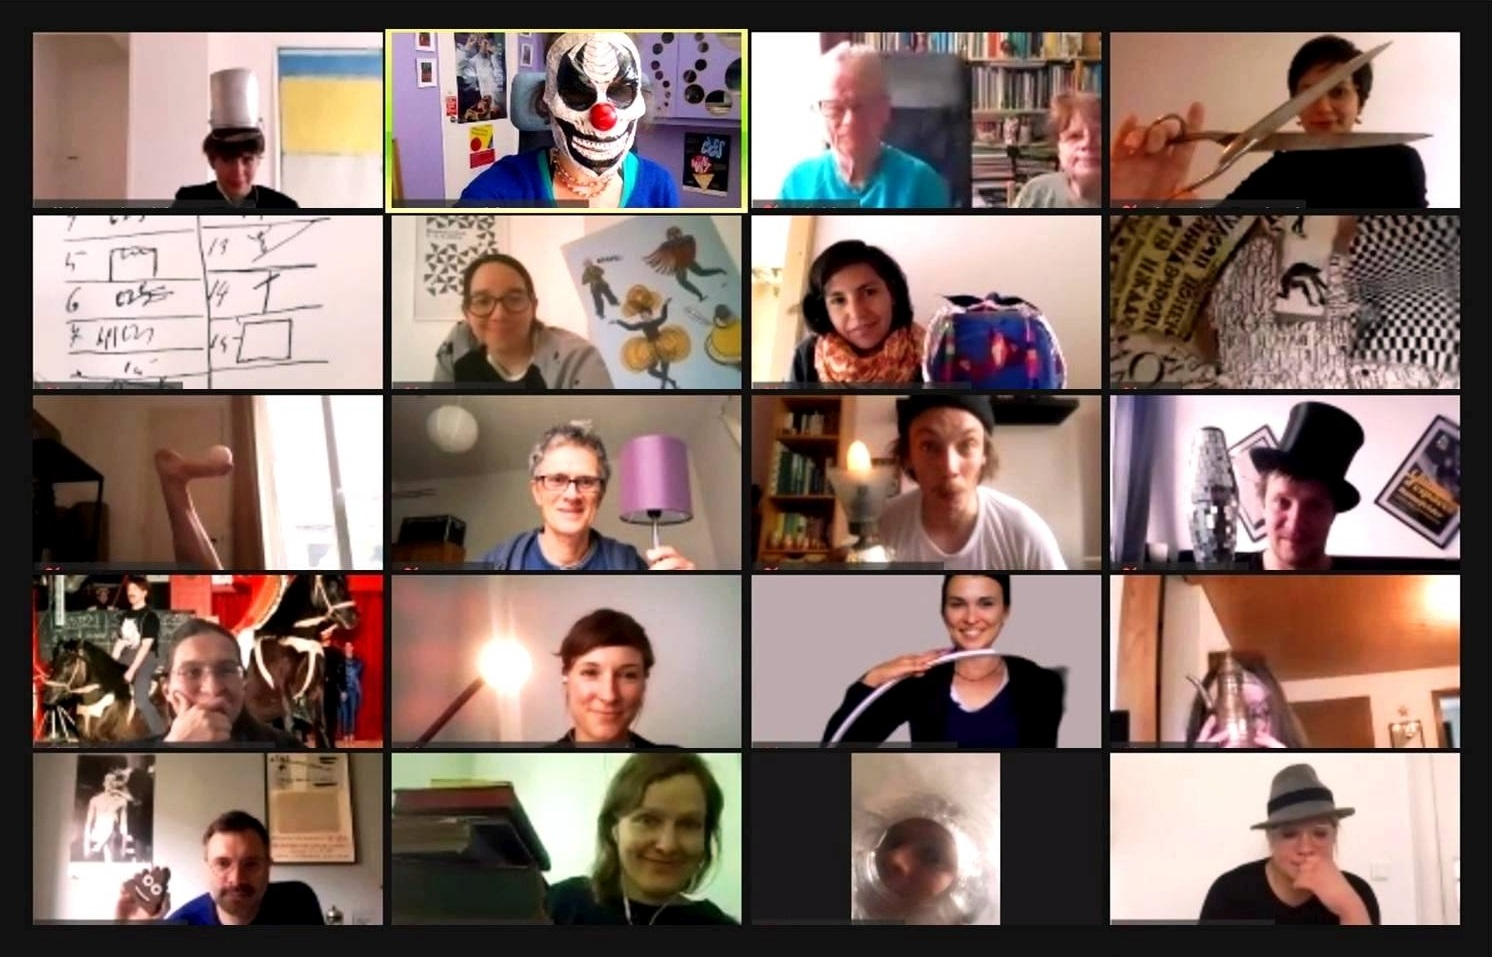 Some of the participants of the virtual symposium showing what they associate with their research/projects at the intersections between science and art (2020). Screenshot: Anna-Sophie Jürgens.